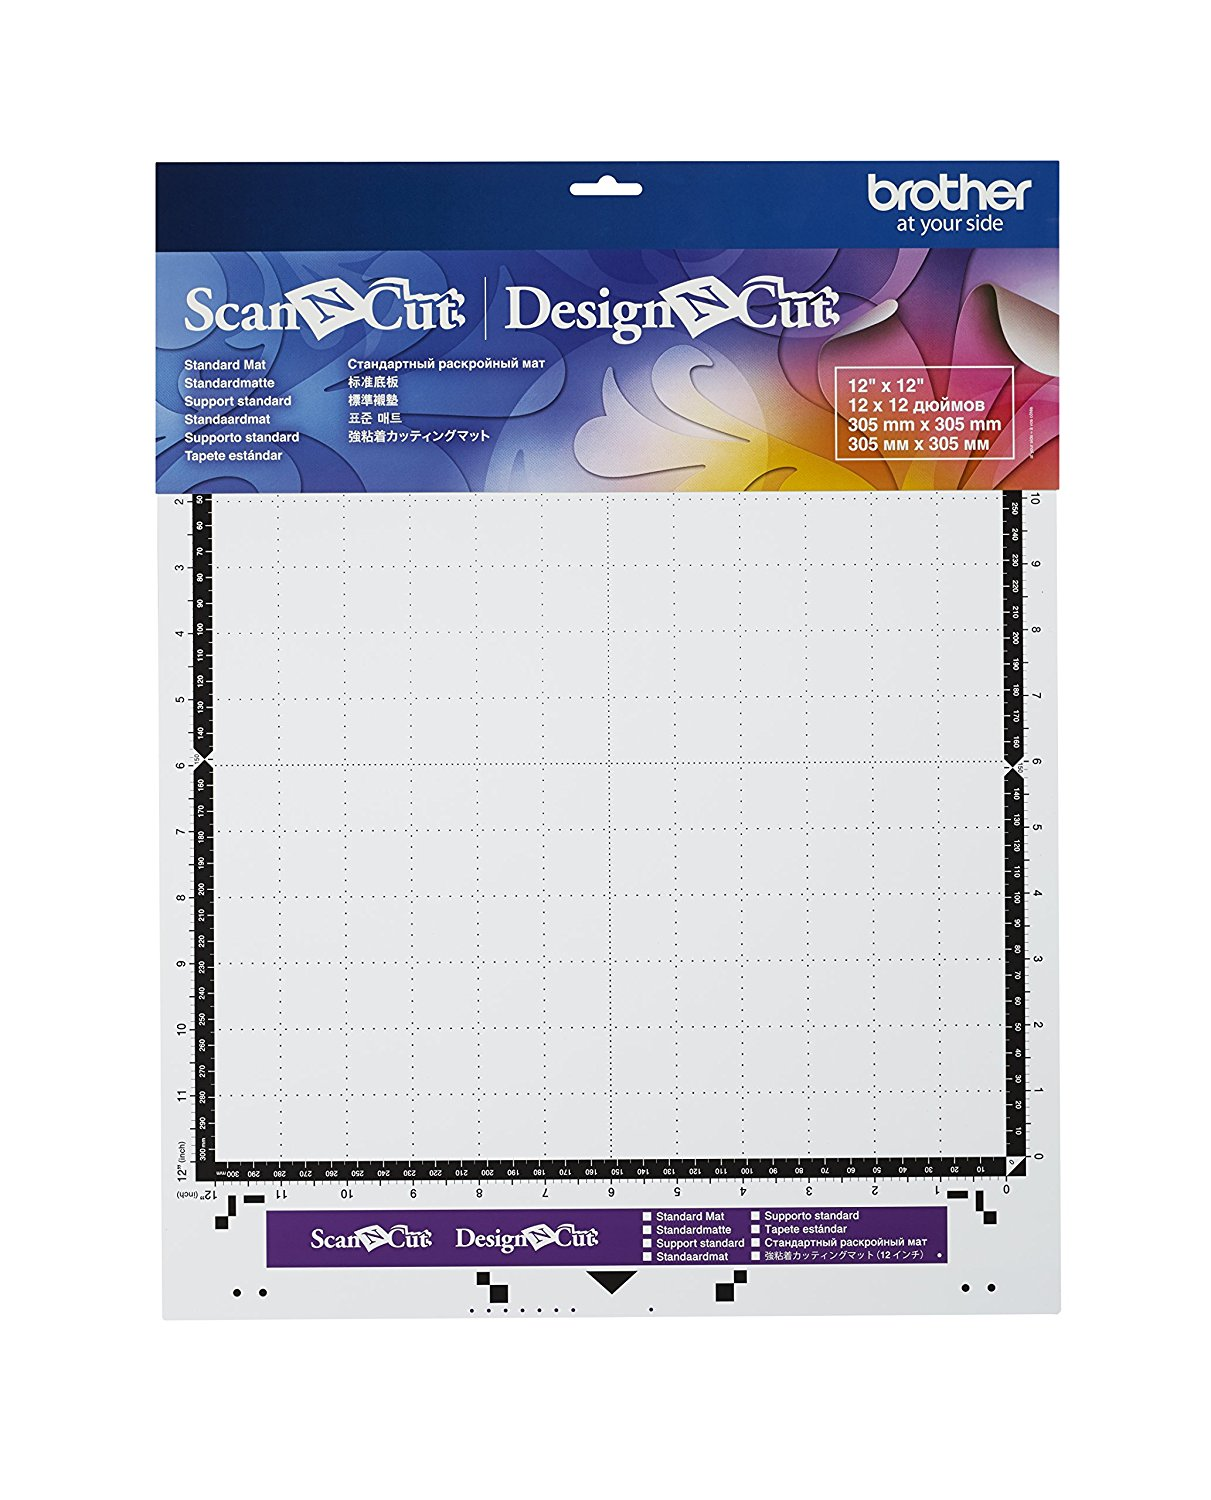 "Brother ScanNCut Standard Tack Adhesive Cutting Mat 12""x12"" by Brother Sewing"